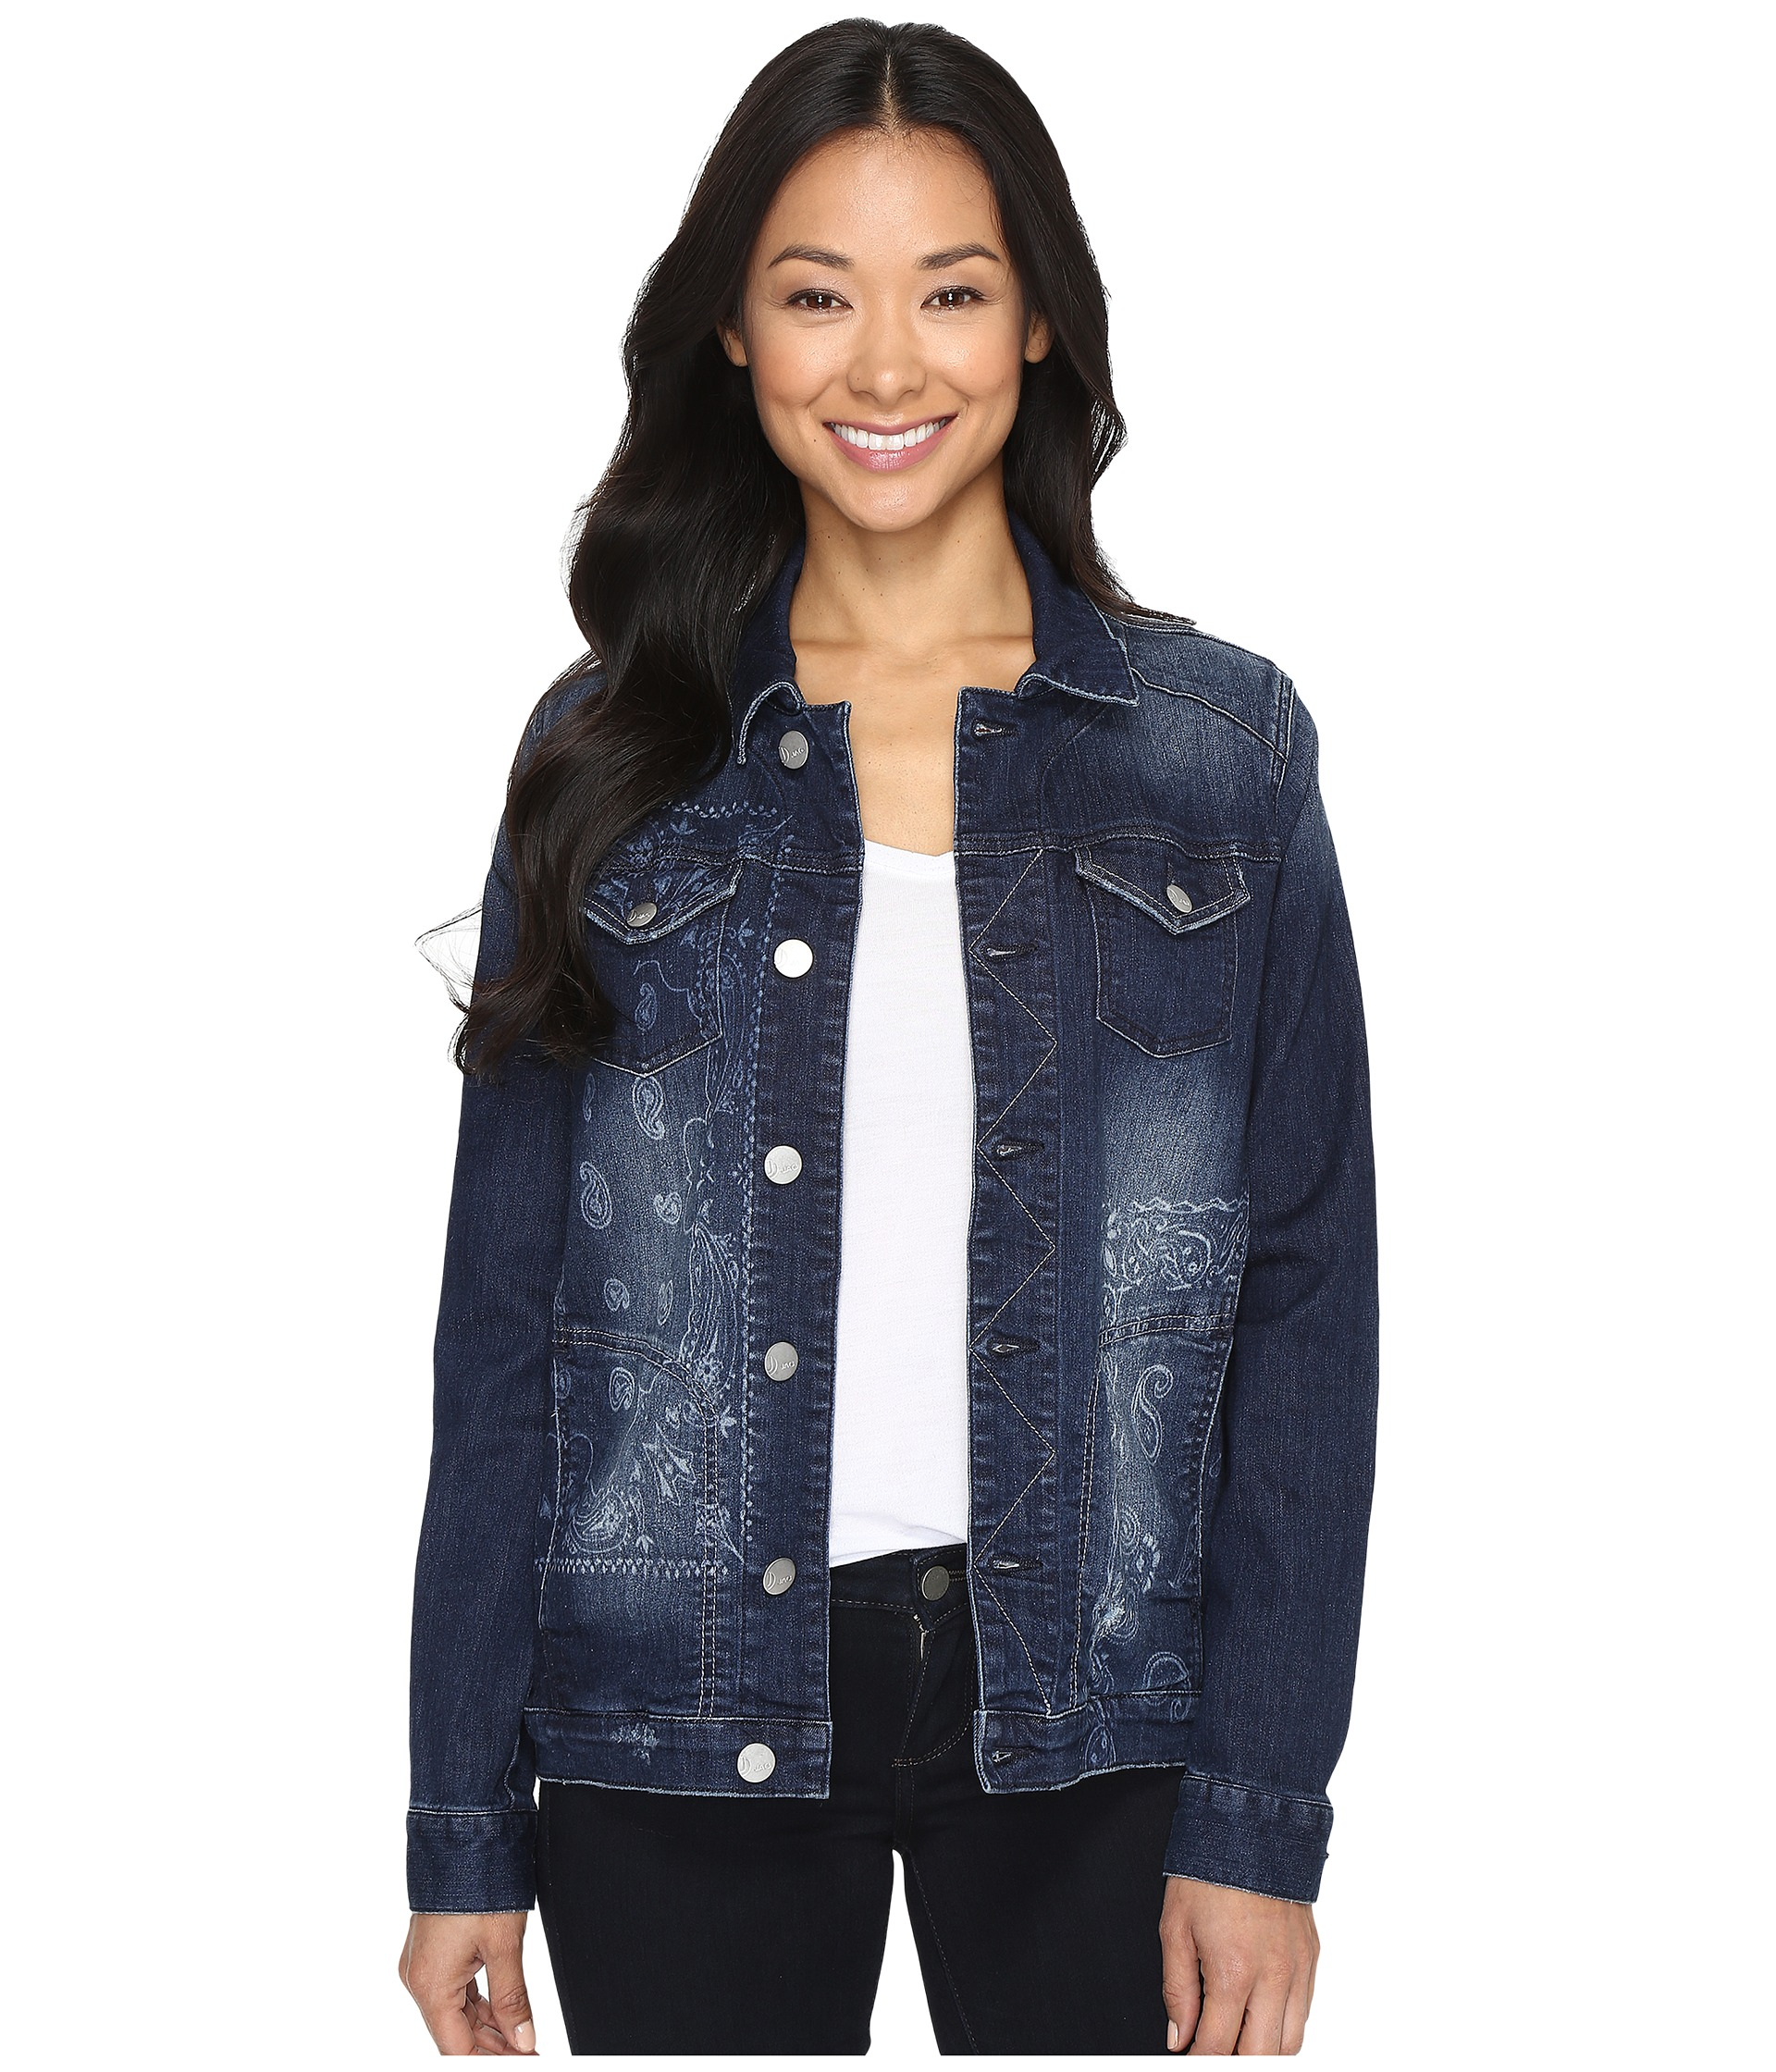 Denim Jackets, Clothing | Shipped Free at Zappos